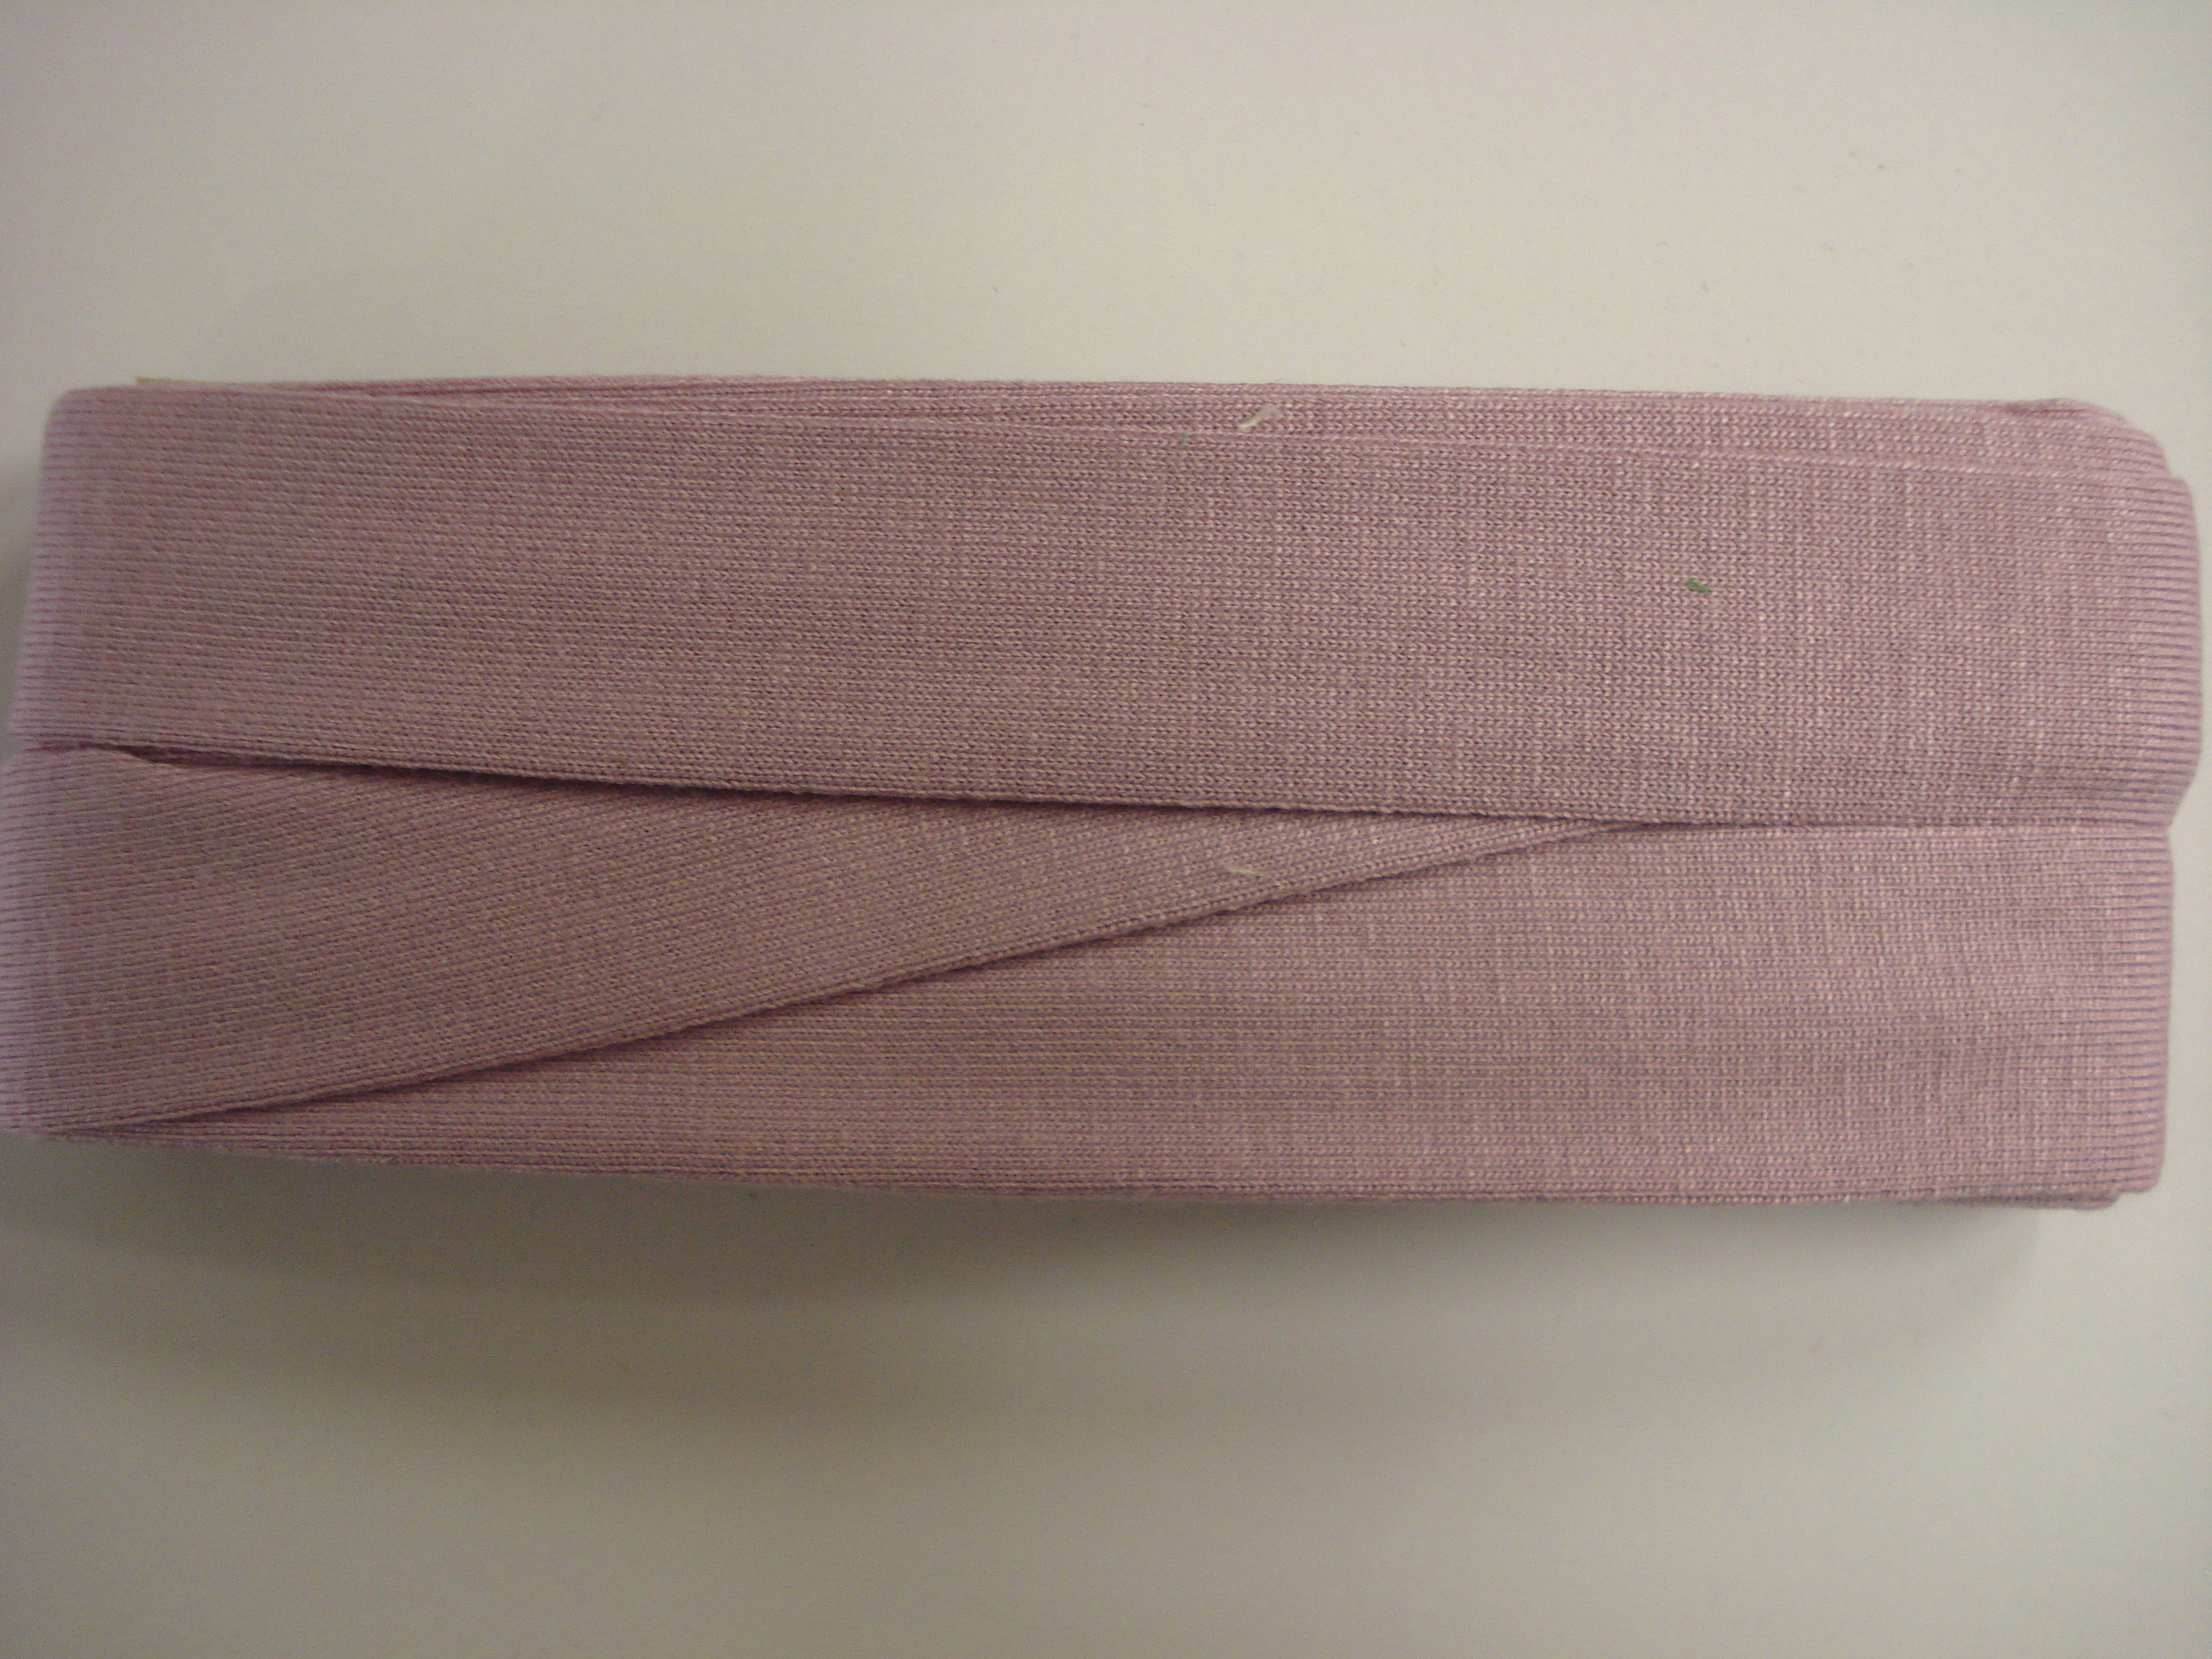 Biasband Tricot Dusty lavendel